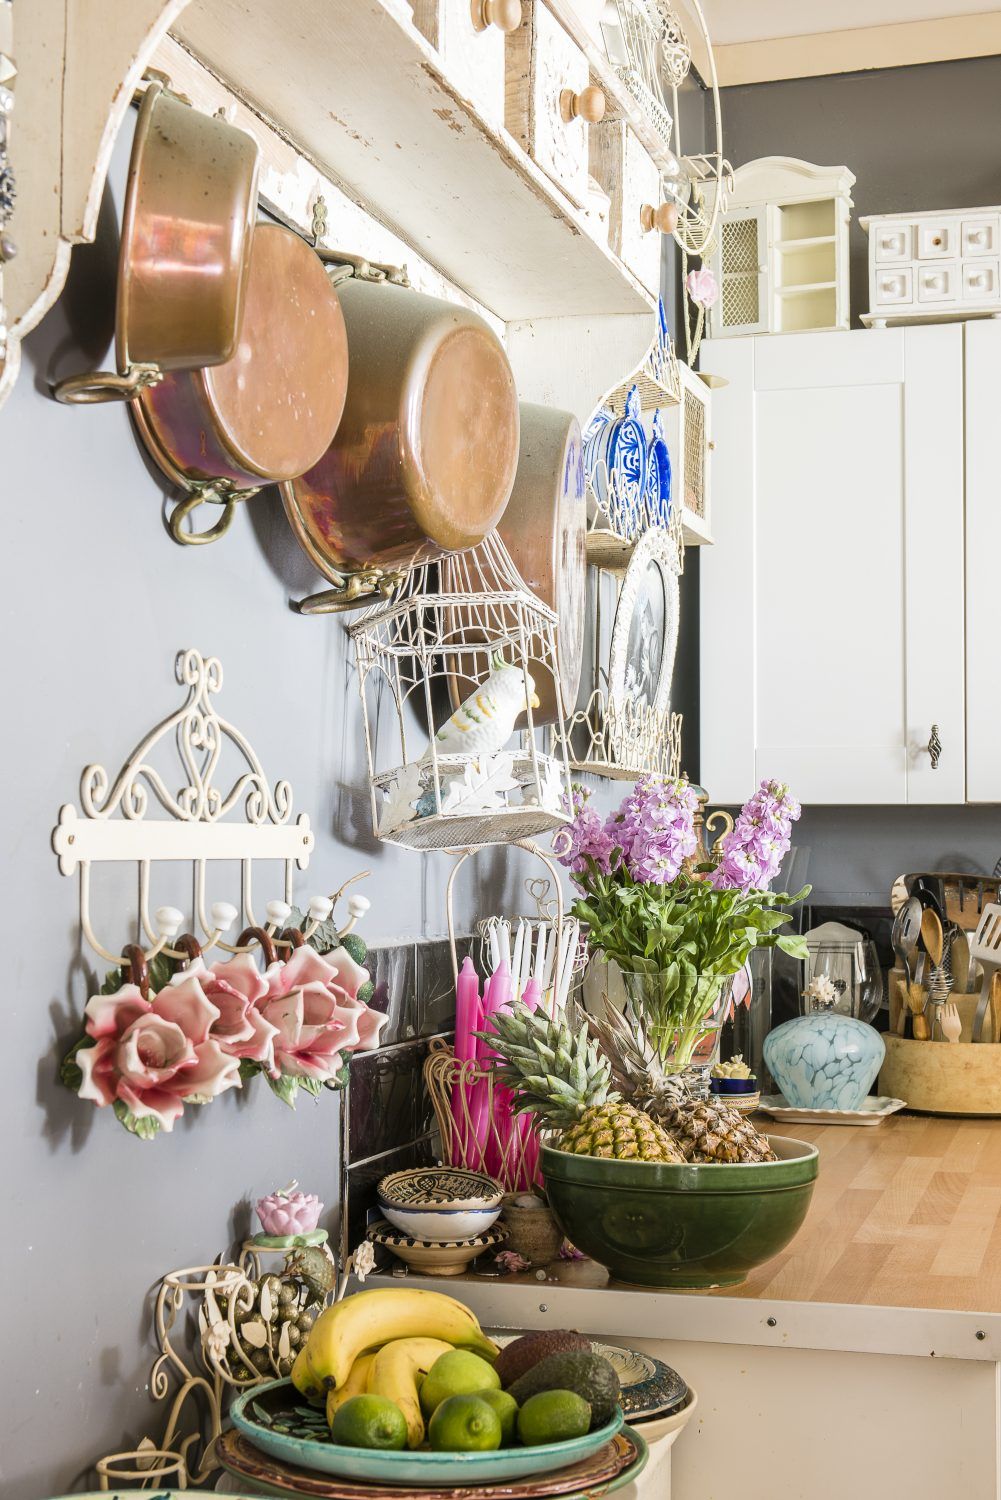 The kitchen sings with Spanish pottery, hanging vintage copper pots and occasional touches of whimsy in the form of a birdcage and ceramic roses